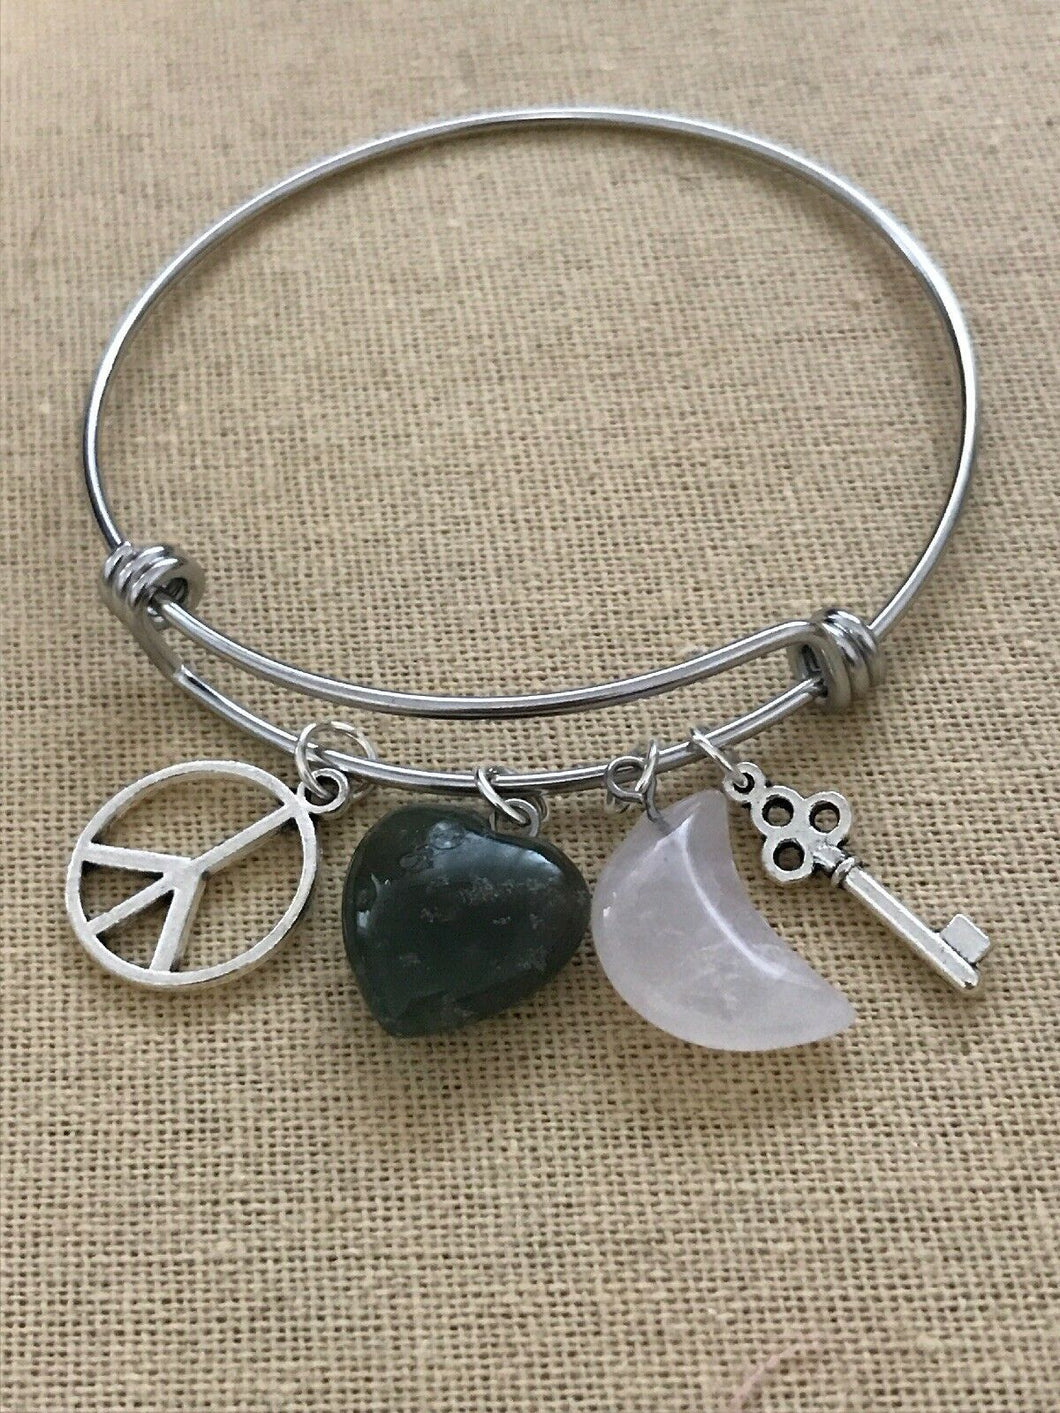 Handmade with Love - Bangle Bracelet